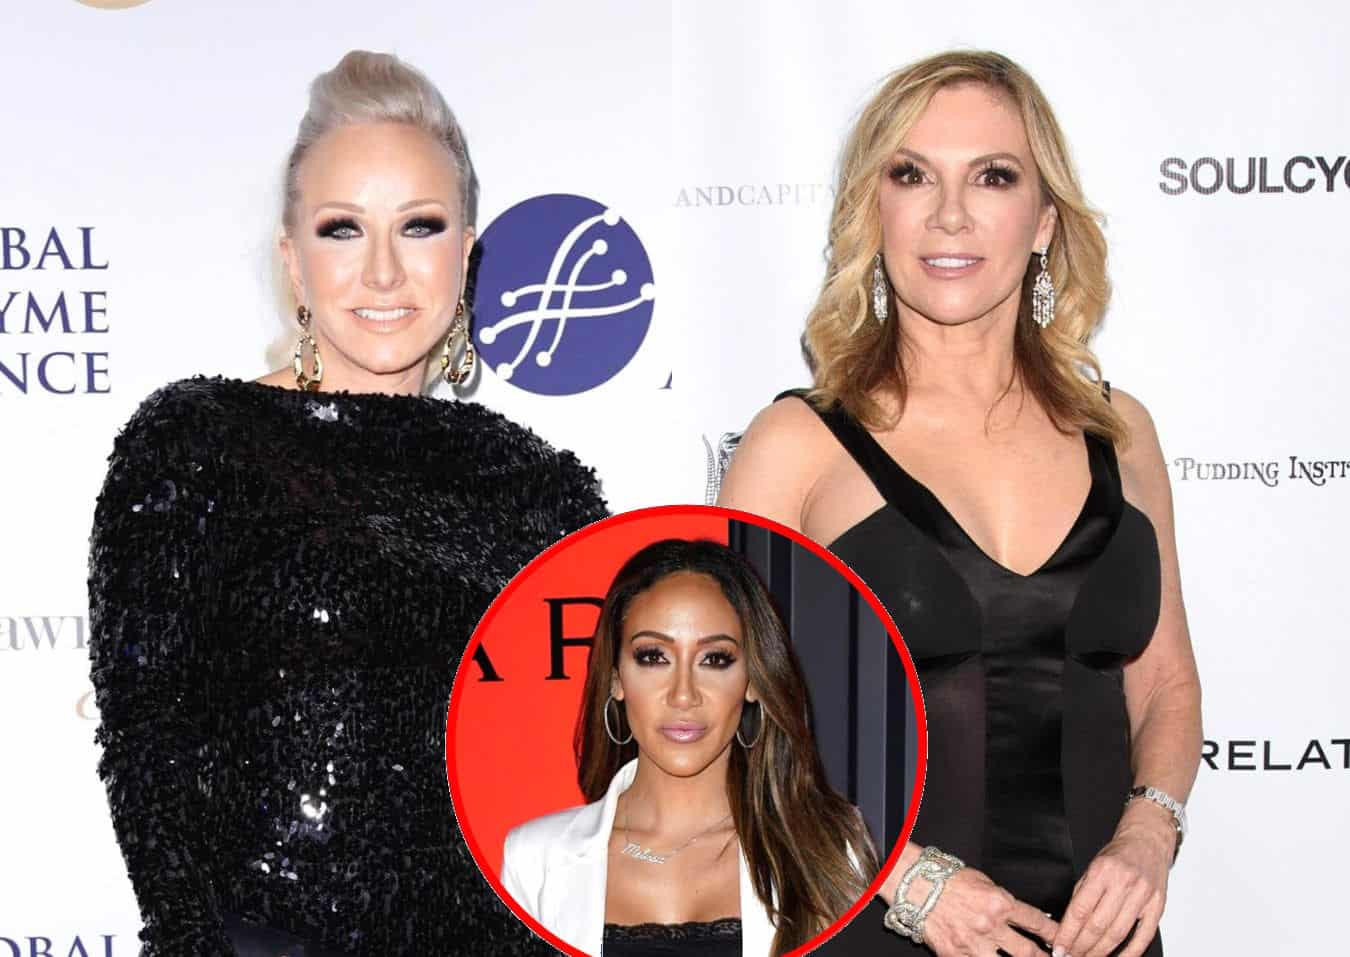 RHONJ Star Margaret Josephs Slams Ramona Singer for Being Mean to Fans, Implies Ramona's Friendship With Melissa Gorga Might Be a Bit One-Sided